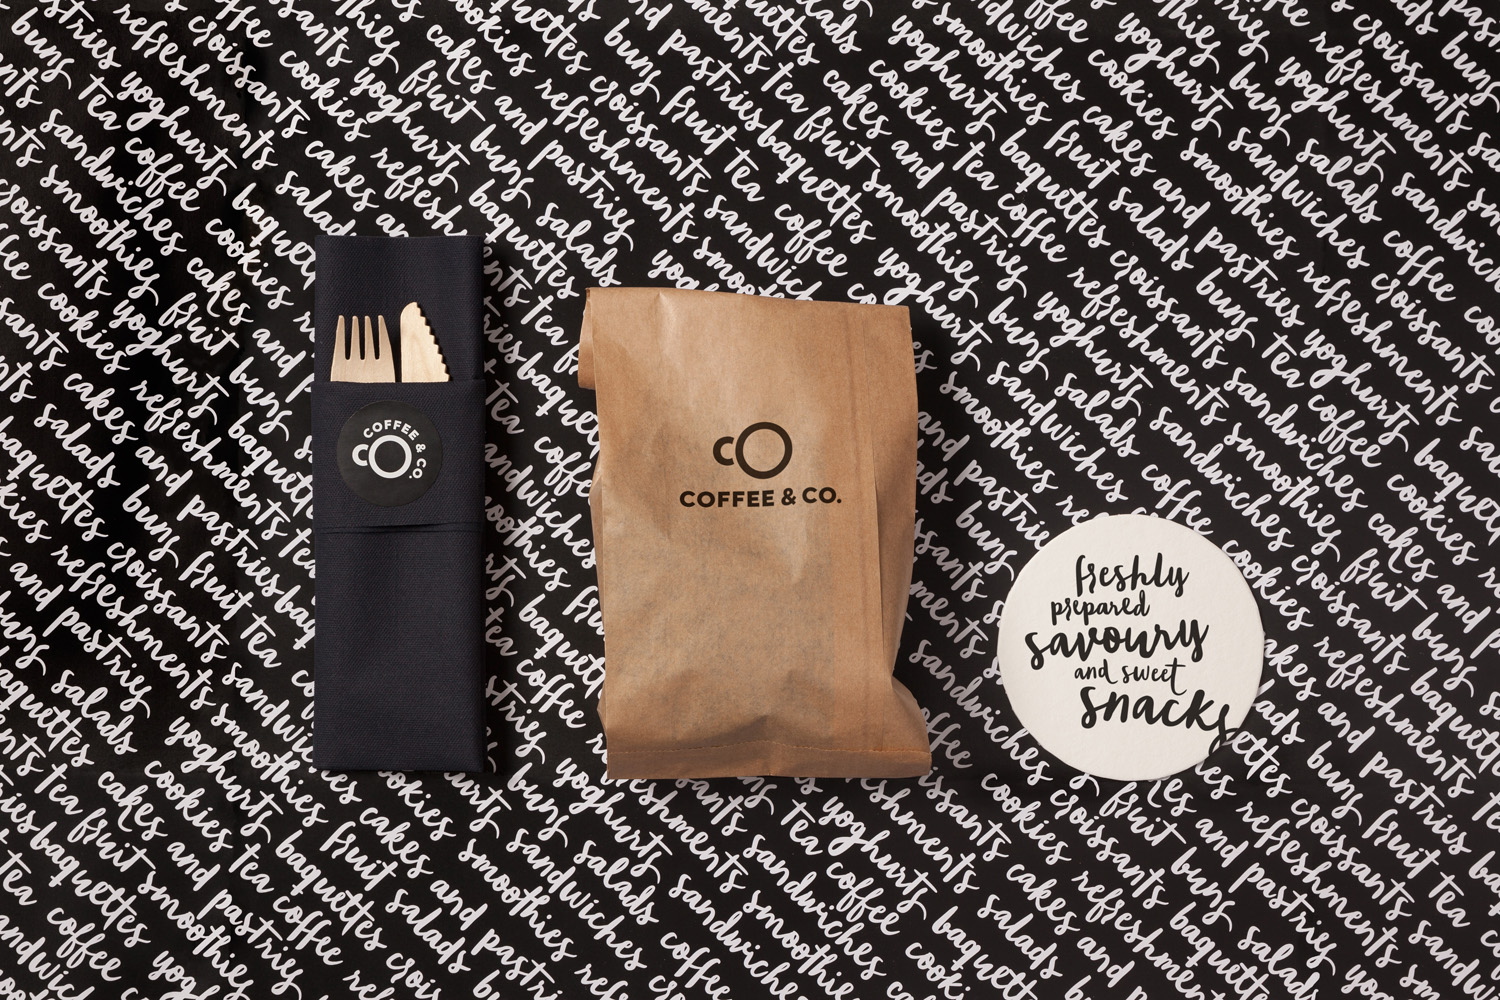 Cafe & Coffee Shop Branding – Coffee & Co. by Bond, Finland